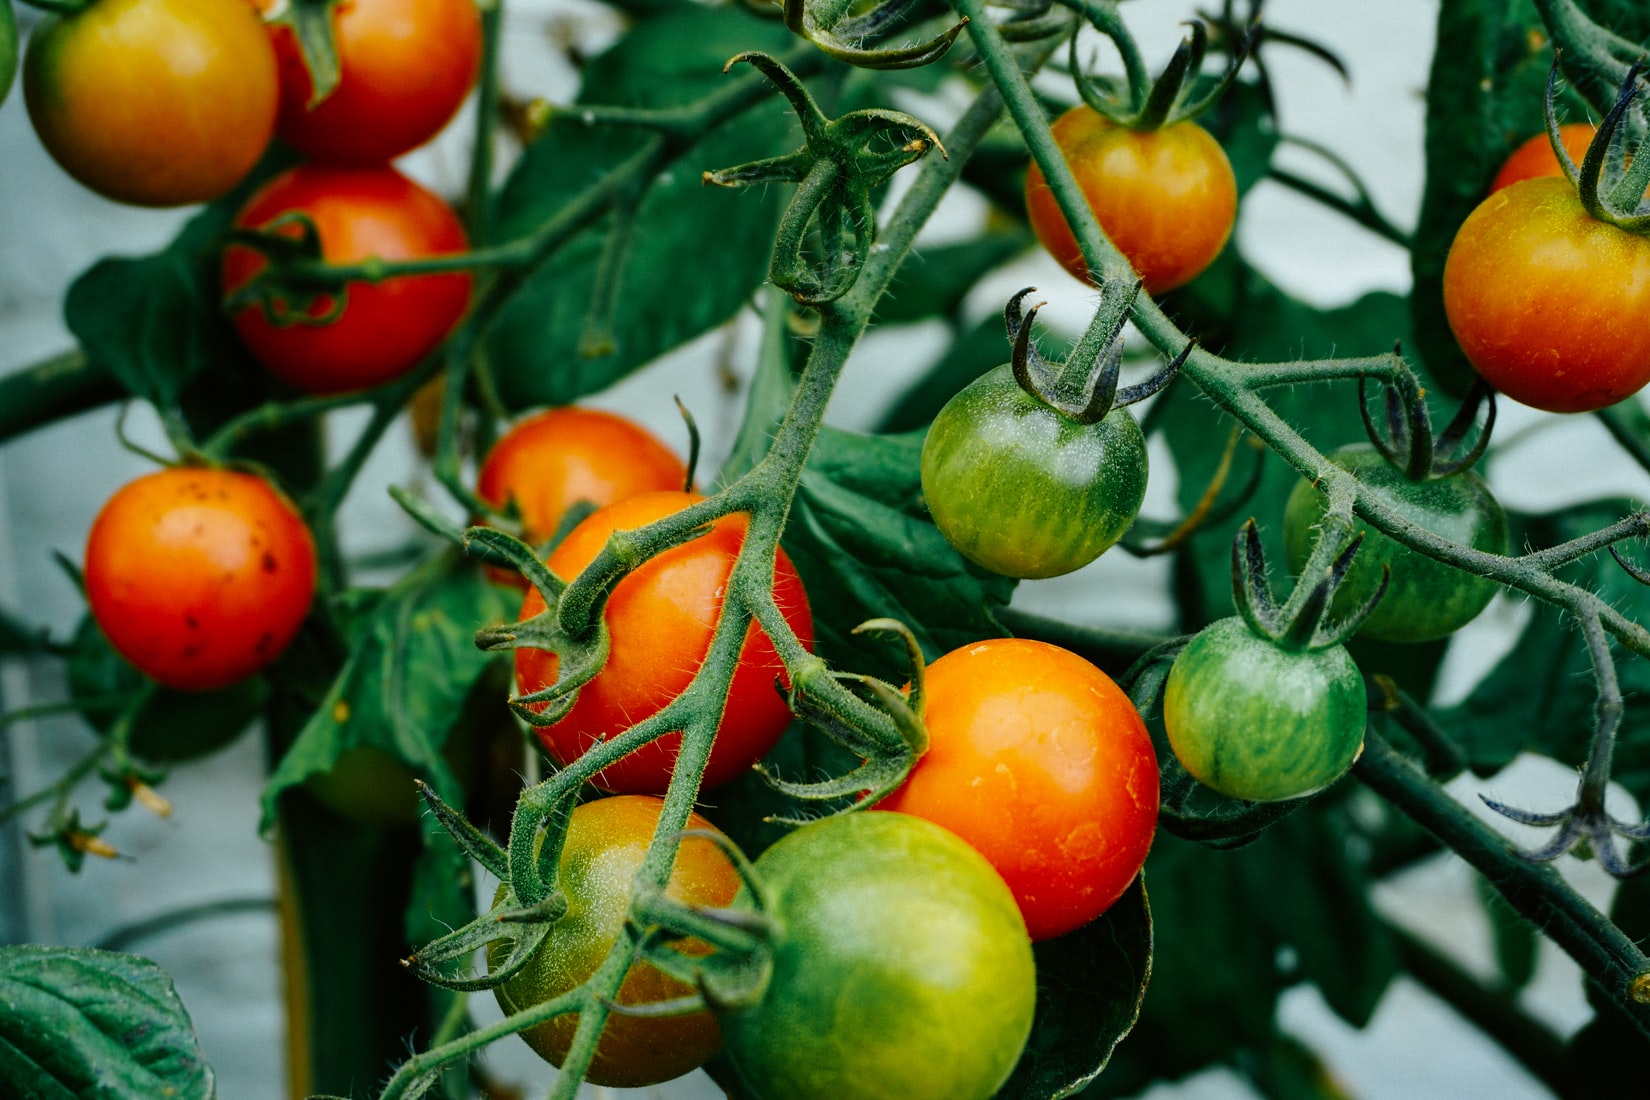 Ripe Tomatoes from a Garden Farm